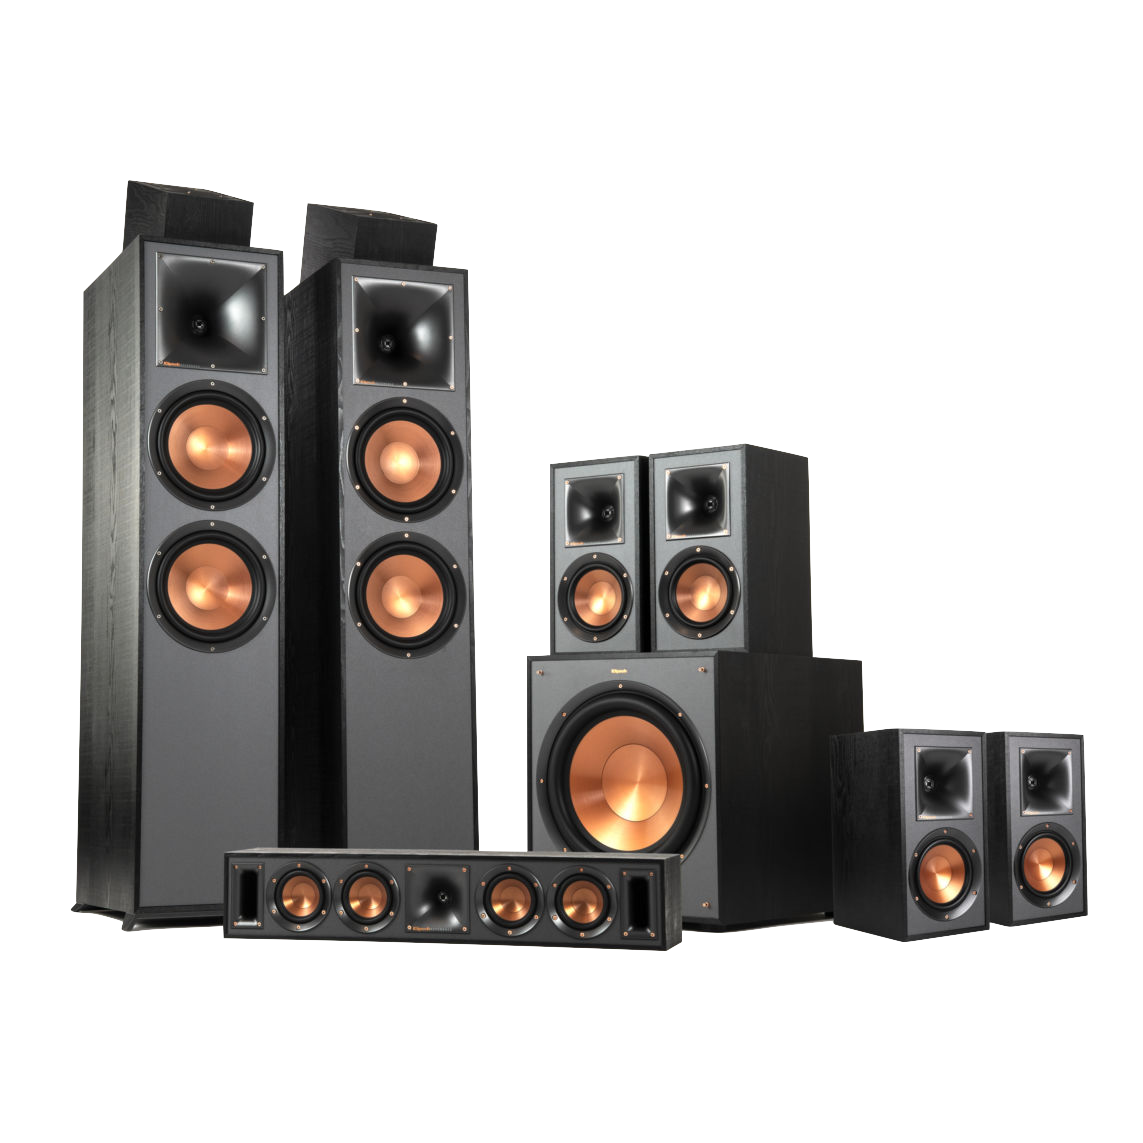 7.1.2 Dolby Atmos® Home Theater system will immerse you into the action with crisp, clear sound.  Features:  Includes: (2) RP-8000F, (1) RP-404C, (2 Pair) RP-600M, (1 Pair) RP-500SA, (1) SPL-150   Titanium LTS Vented Tweeters with Hybrid Tractrix® Horns   Spun Copper Cerametallic™ Woofers  Strong, Flexible Removable Magnetic Grilles